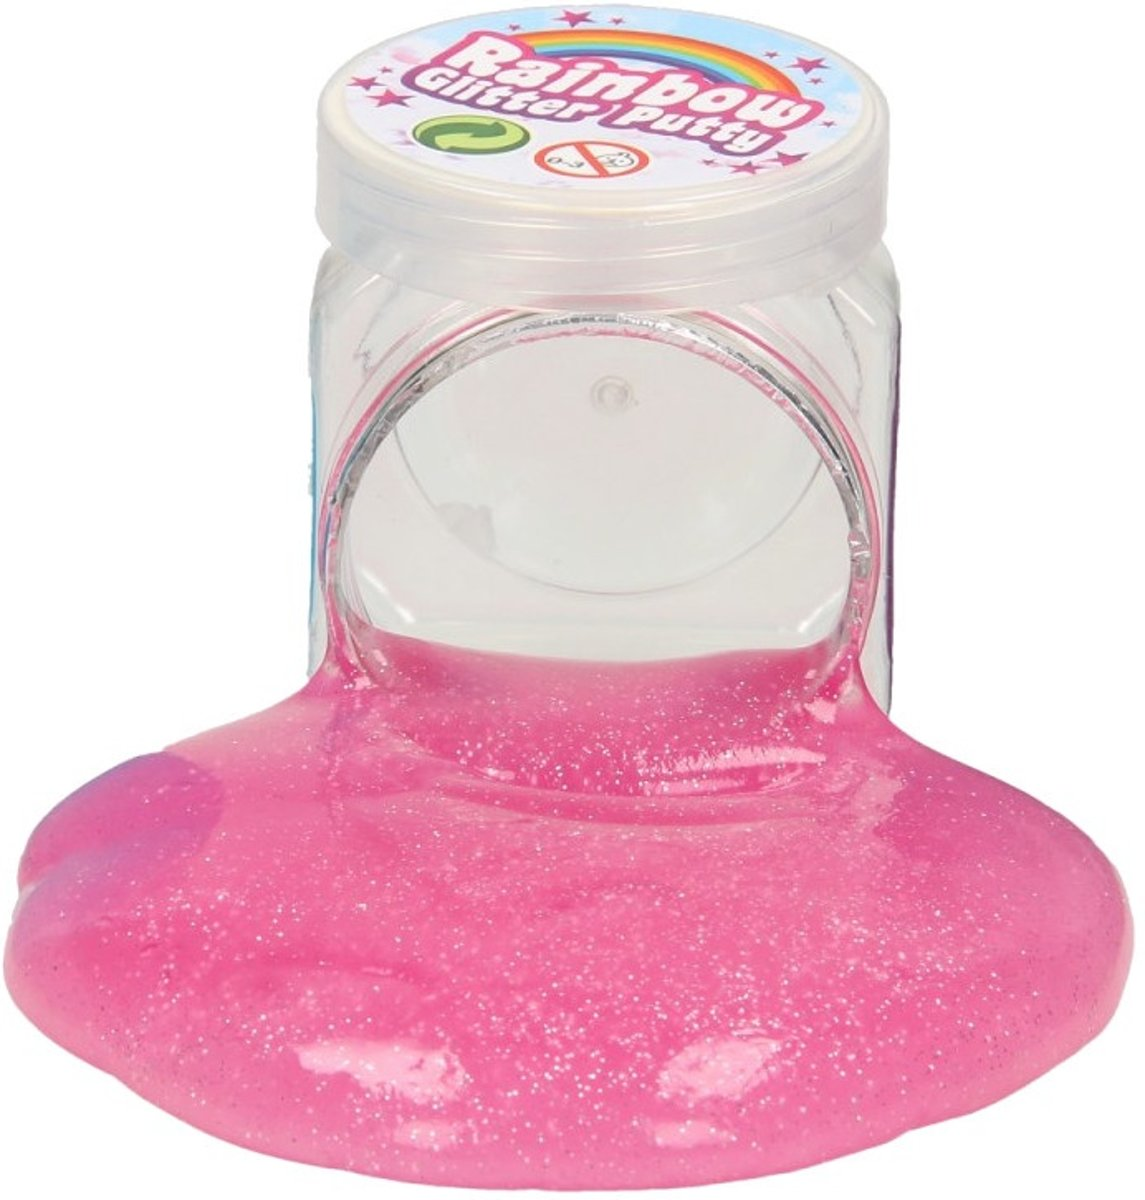 Rainbow Glitter Putty 6 Cm Roze